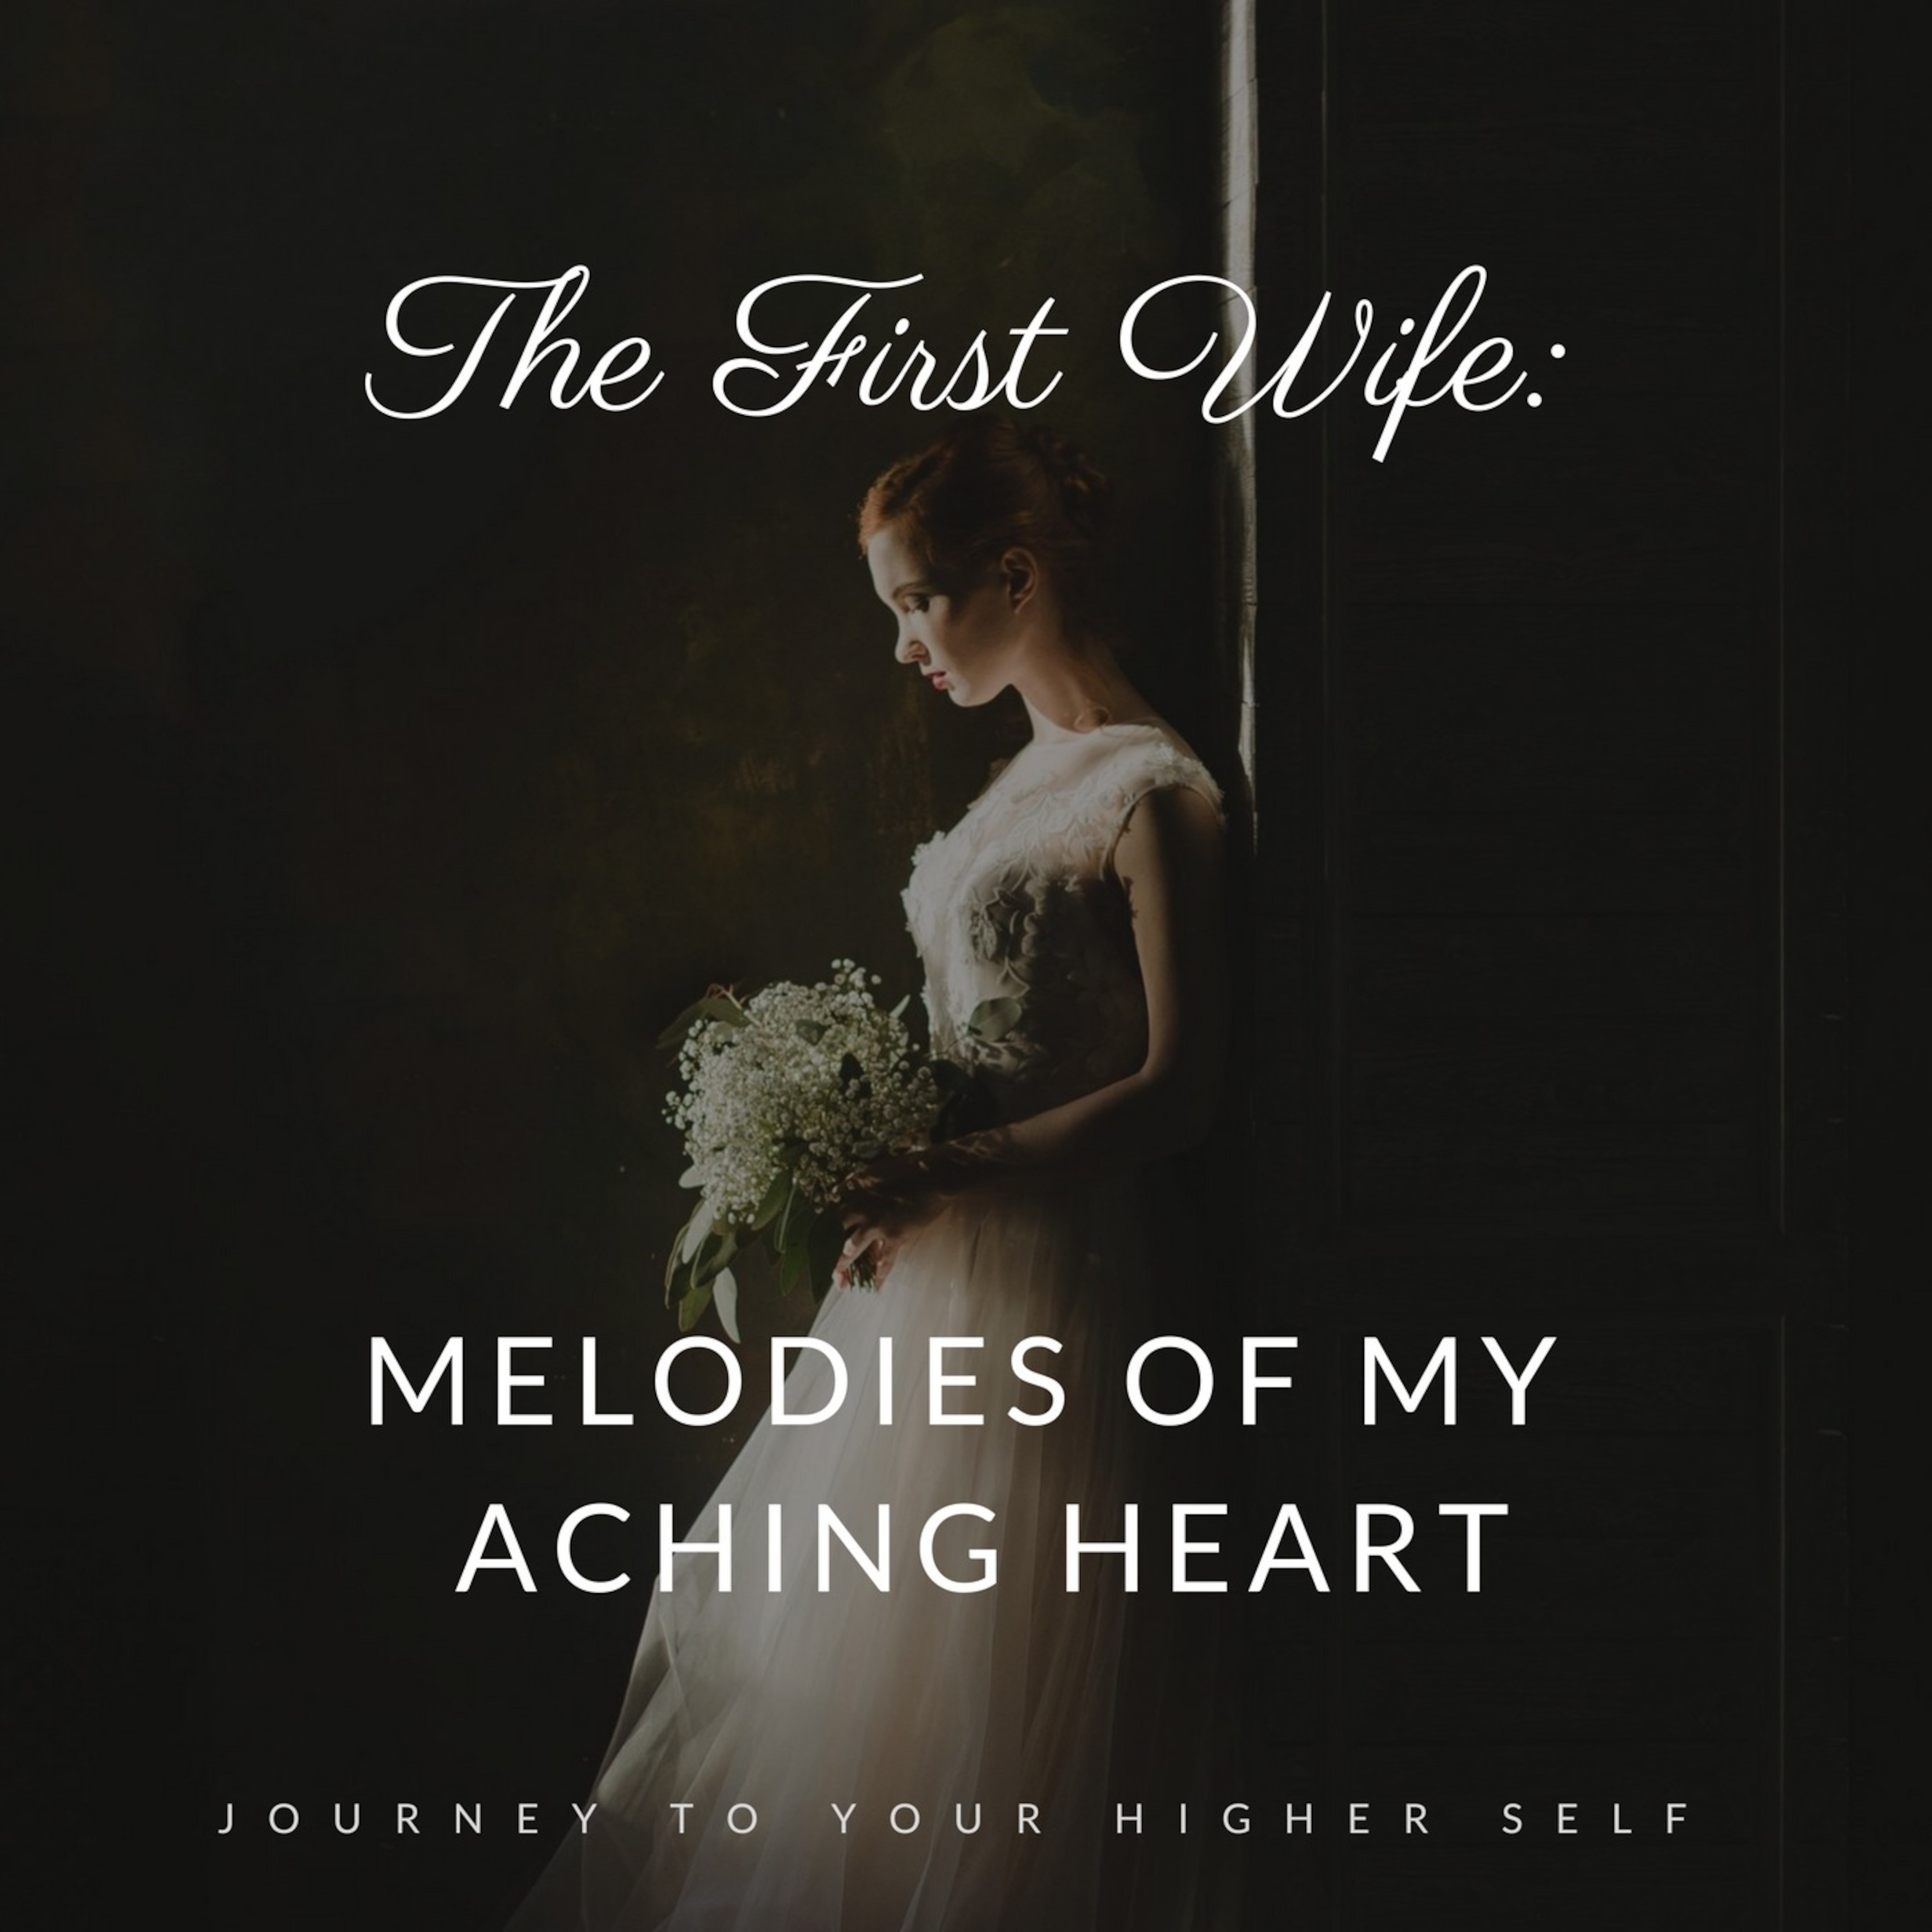 First Wives - Melodies of My Aching Heart - Stage 7 - Forgiveness